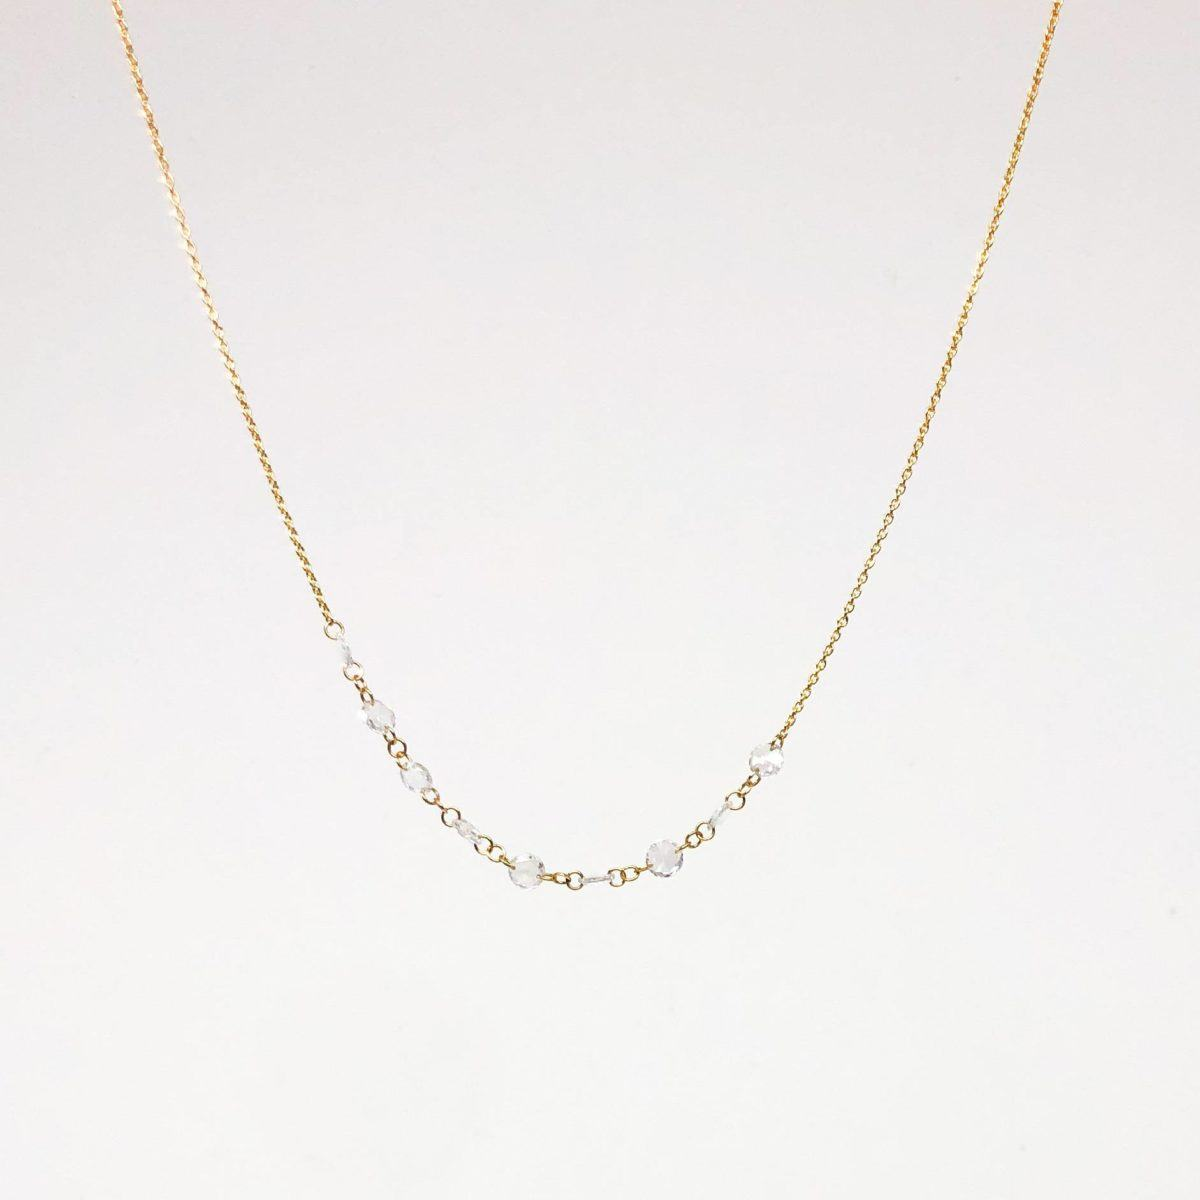 0.86 CT Drilled Diamond Necklace